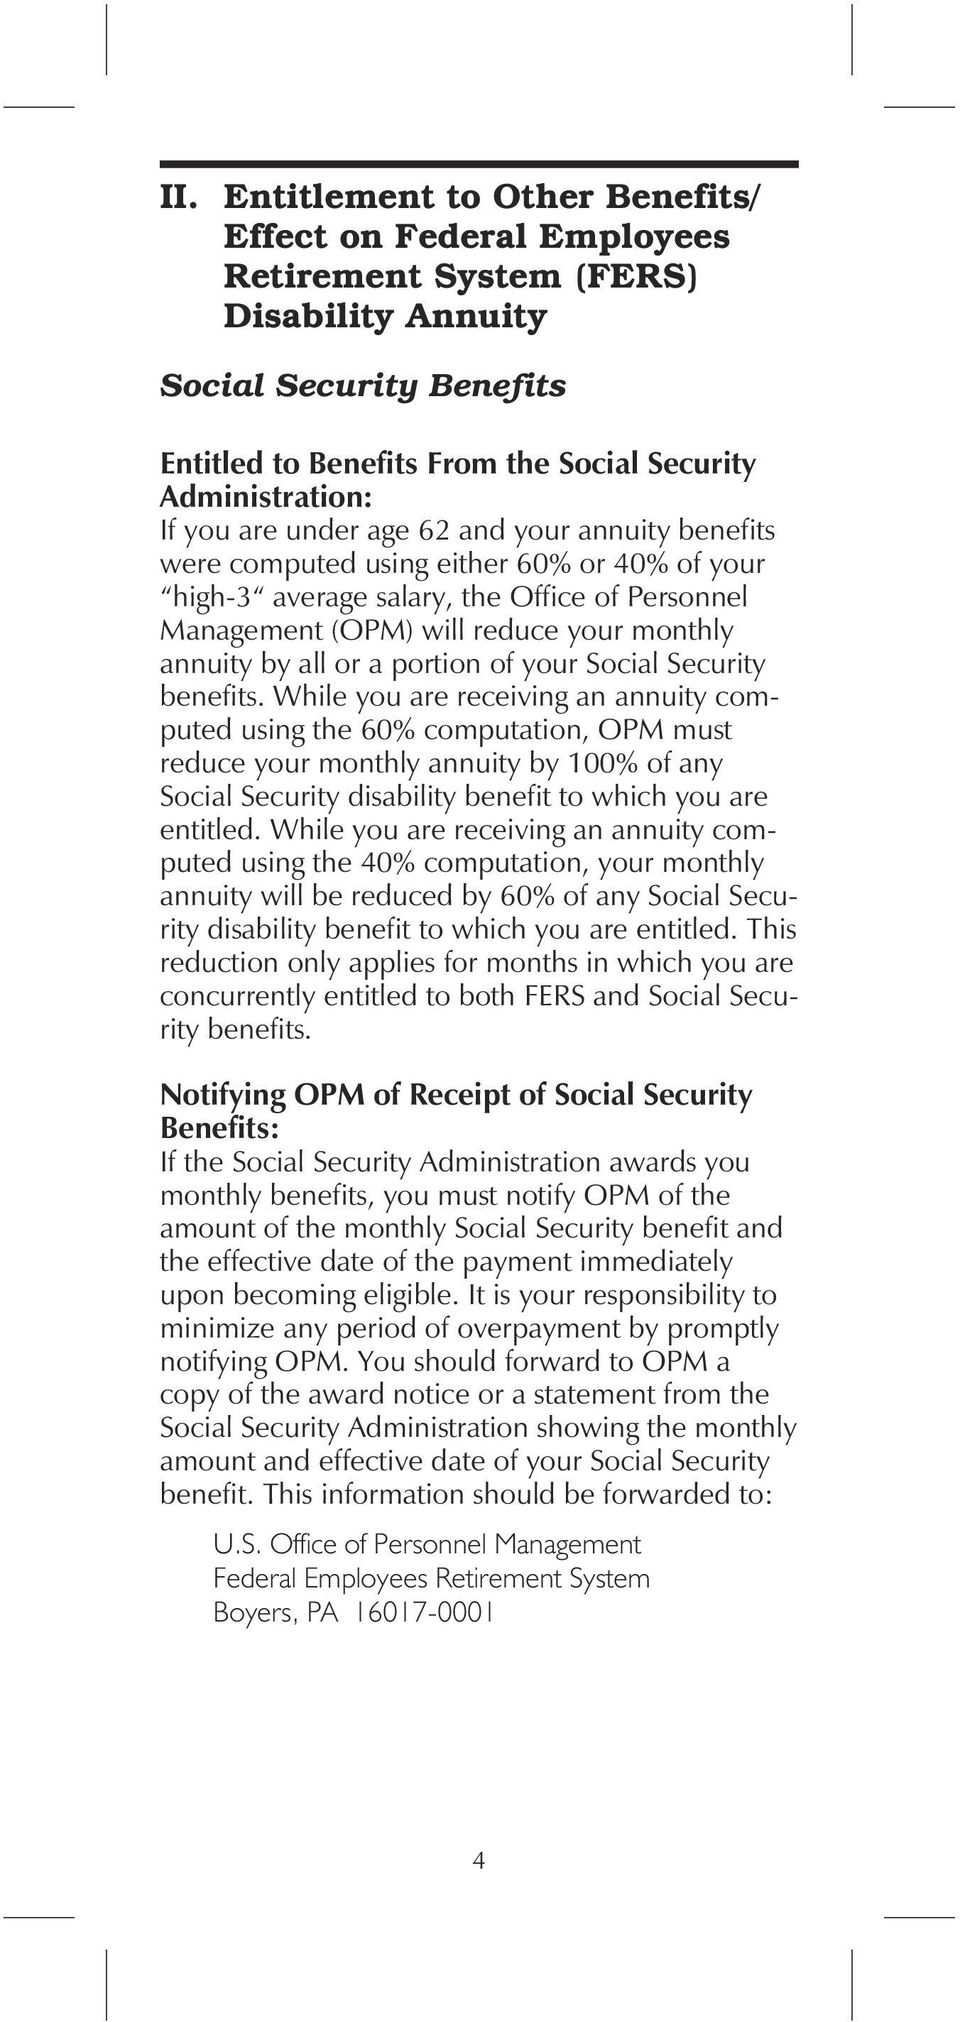 a portion of your Social Security benefits.